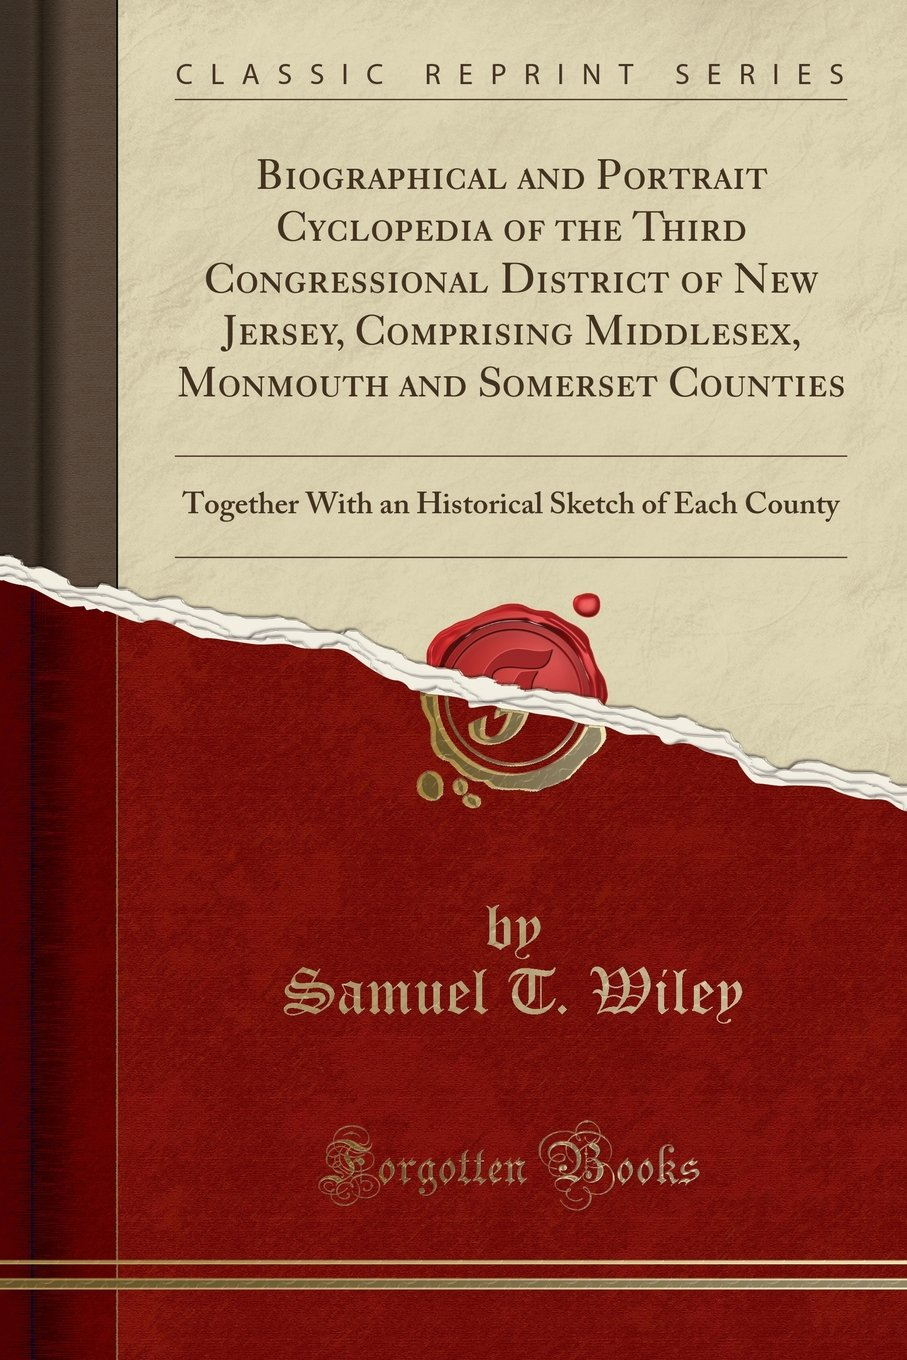 Biographical and Portrait Cyclopedia of the Third Congressional District of New Jersey, Comprising Middlesex, Monmouth and Somerset Counties: Together ... Sketch of Each County (Classic Reprint) Text fb2 book